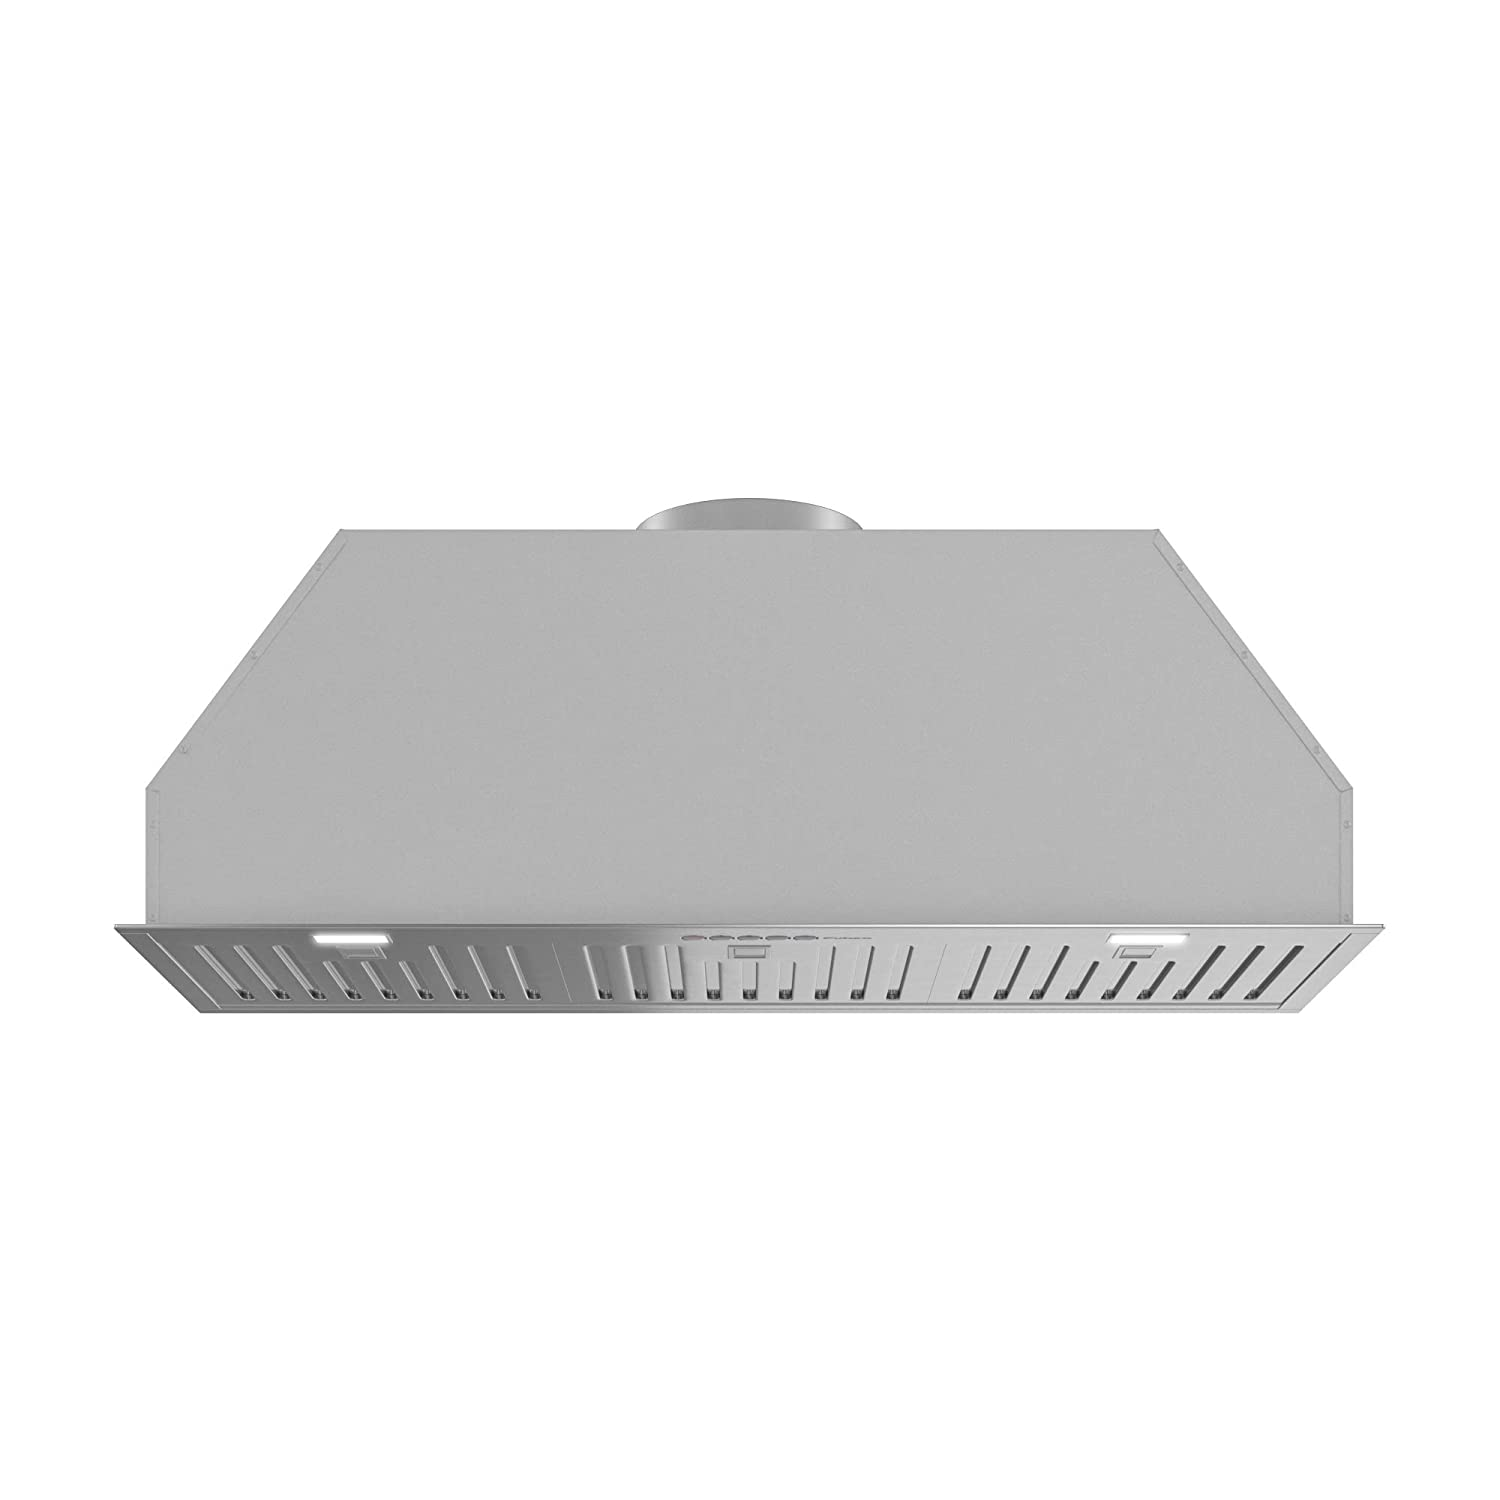 Futuro Futuro Insert-Liner Baffle 32 Inch Wall-mount/In-Cabinet Range Hood - Modern Italian Contemporary Insert Vent Hood - Remote Control, LED, Ultra-Quiet, with Blower